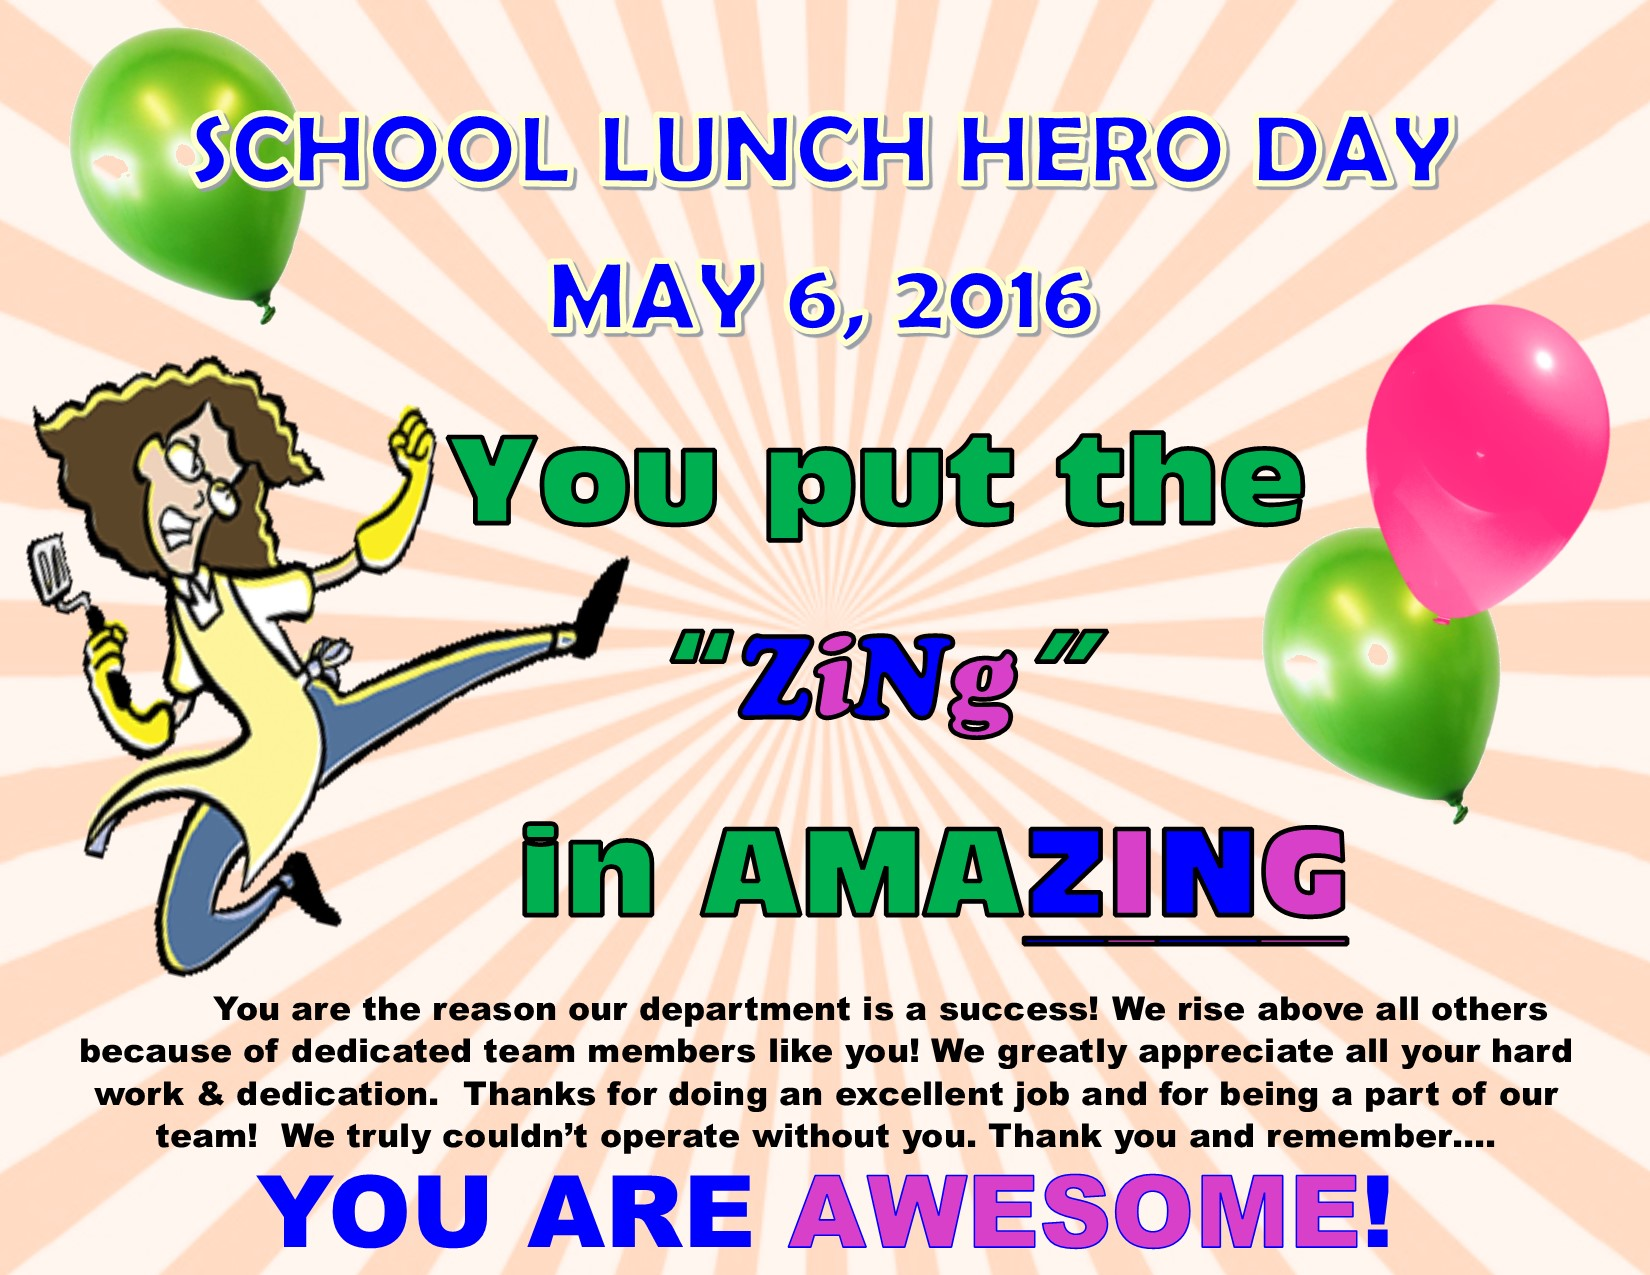 school lunch hero day food and nutrition services school lunch hero day 2016